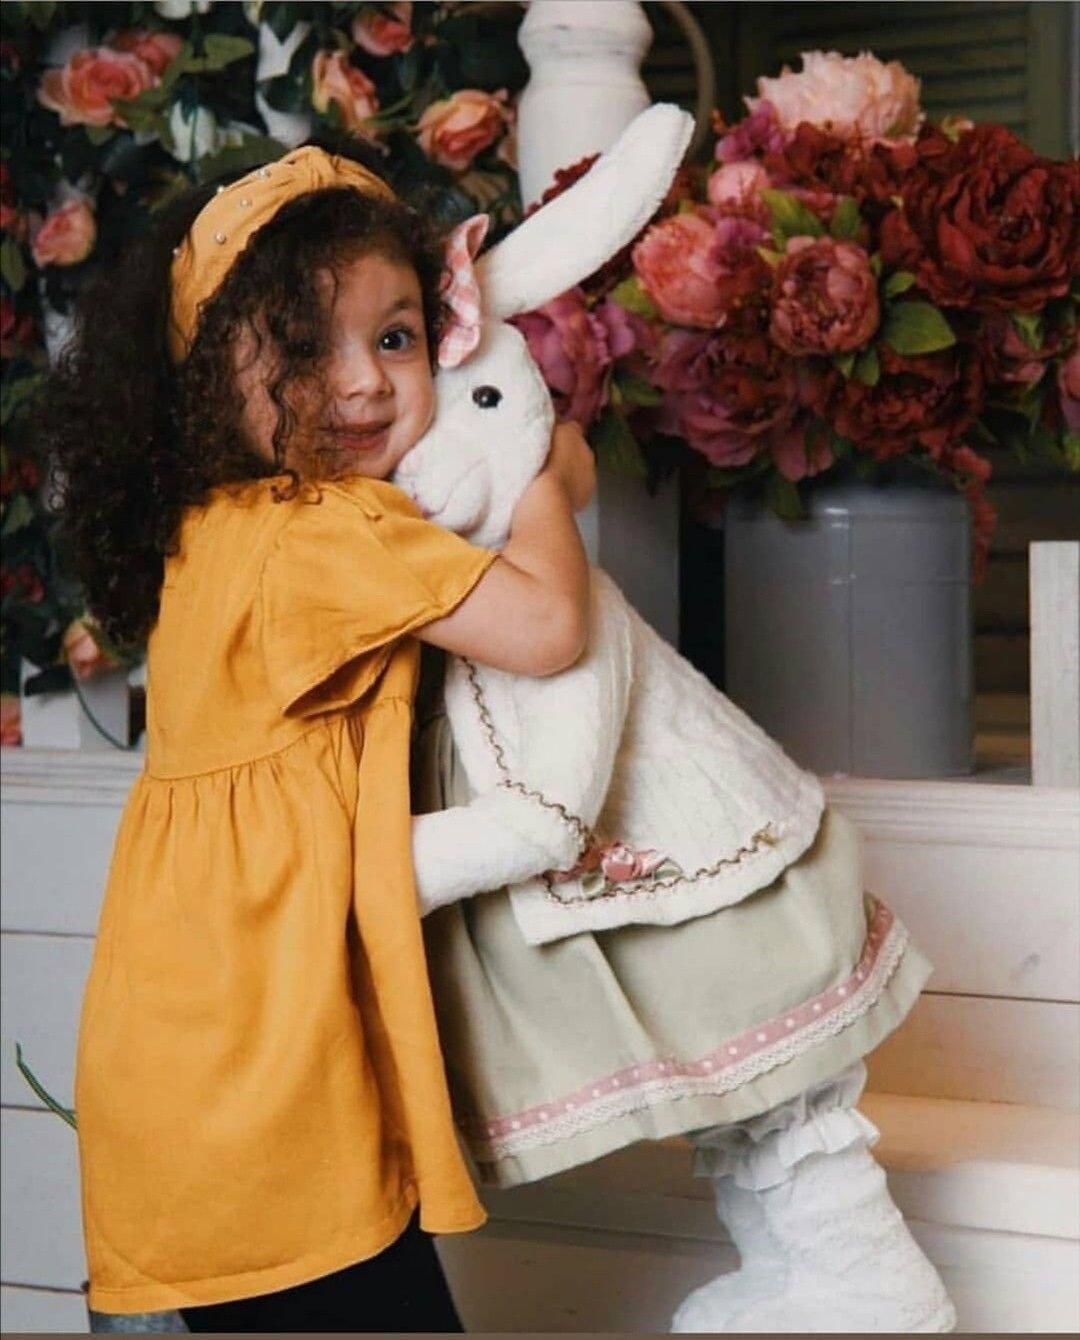 Pin By 𝕴 𝖒 𝖆 𝕯𝖗𝖊𝖆𝖒𝖊𝖗 On صور اطفال Baby Girl Fall Outfits Cute Baby Pictures Baby Gallery